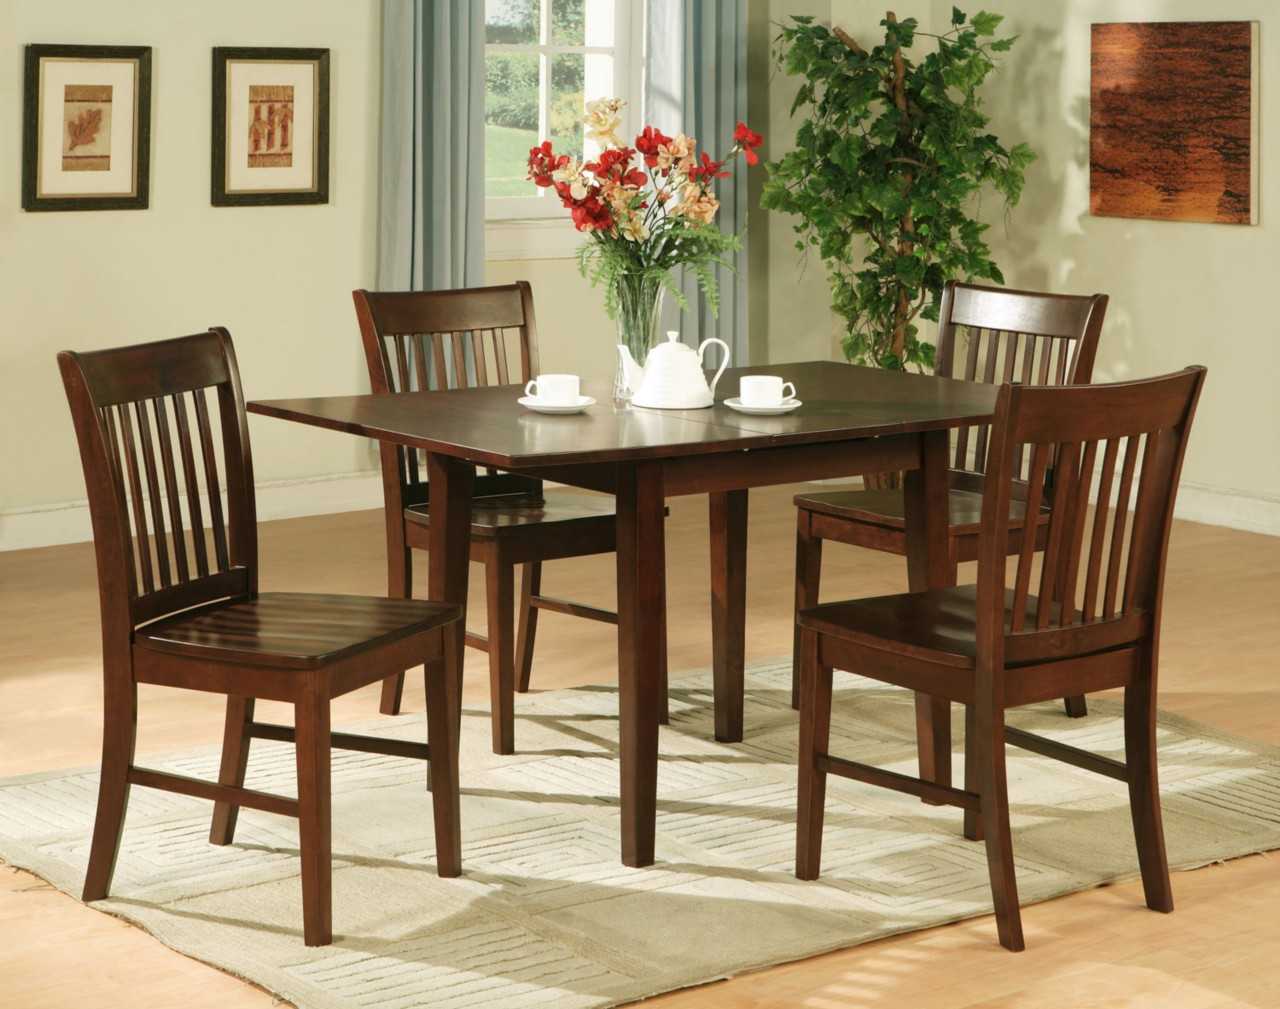 5pc rectangular kitchen dinette table 4 chairs mahogany ebay - Rectangle kitchen table sets ...